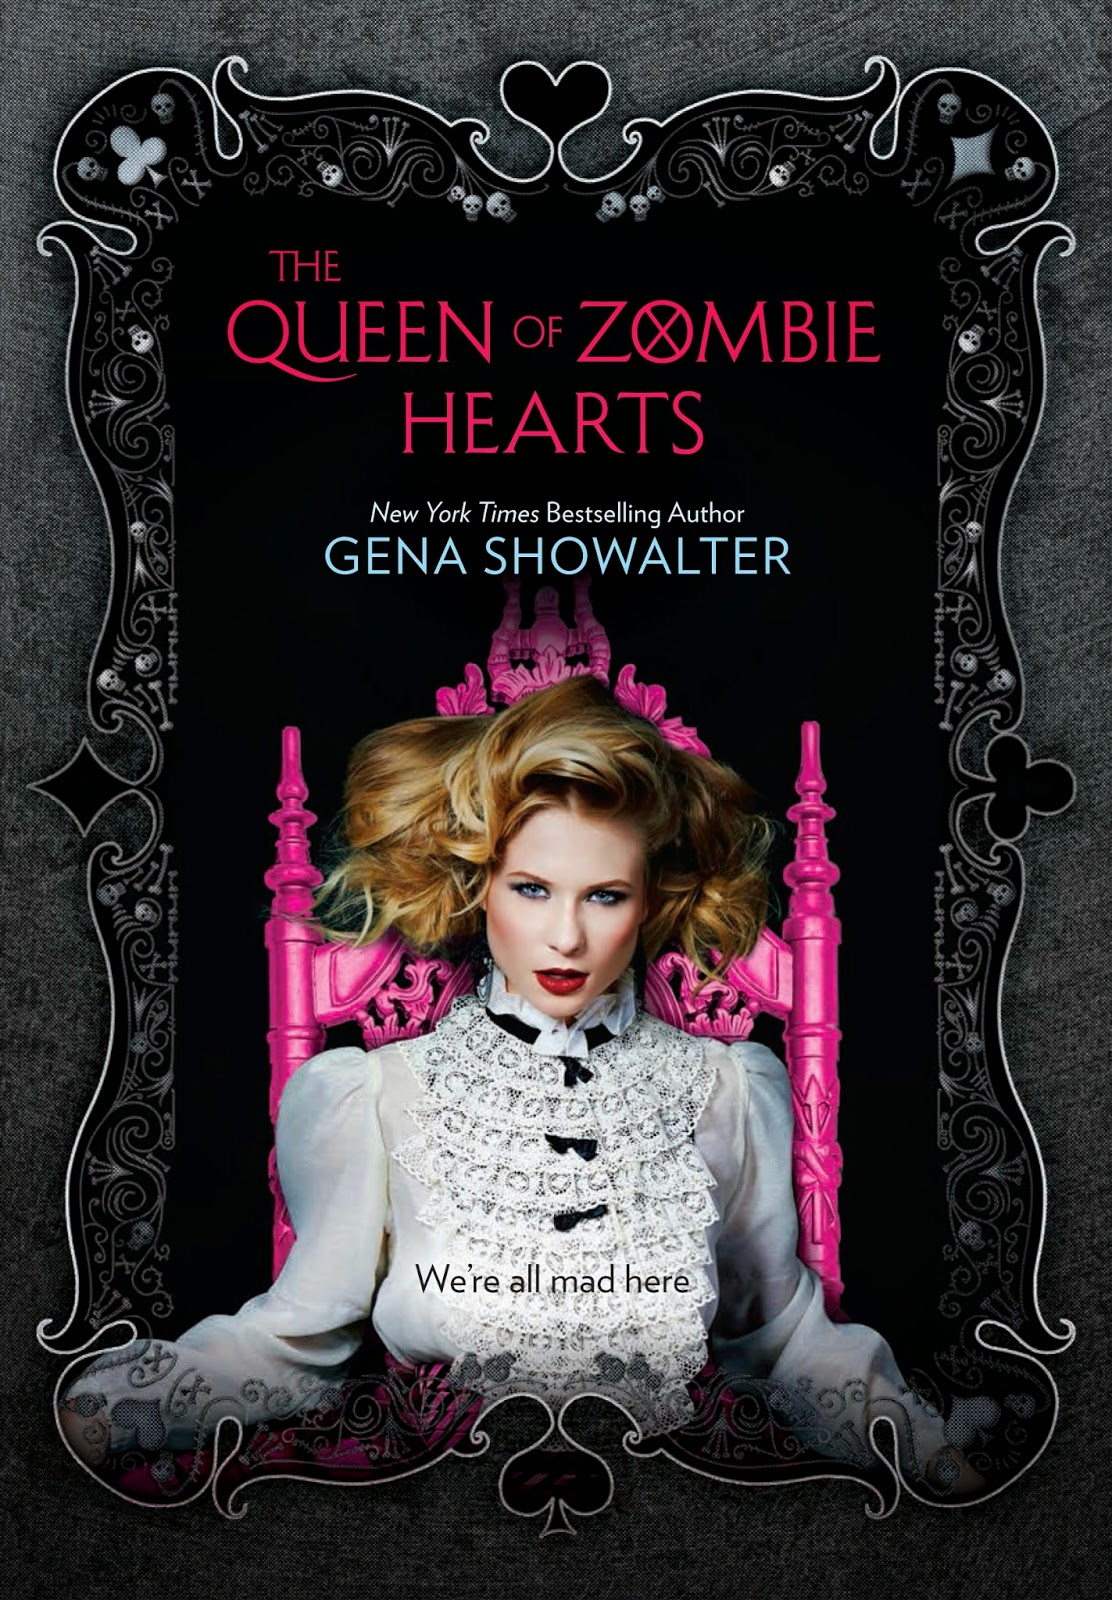 http://bookladysreviews.blogspot.com/2014/02/cover-reveal-queen-of-zombie-hearts-by.html